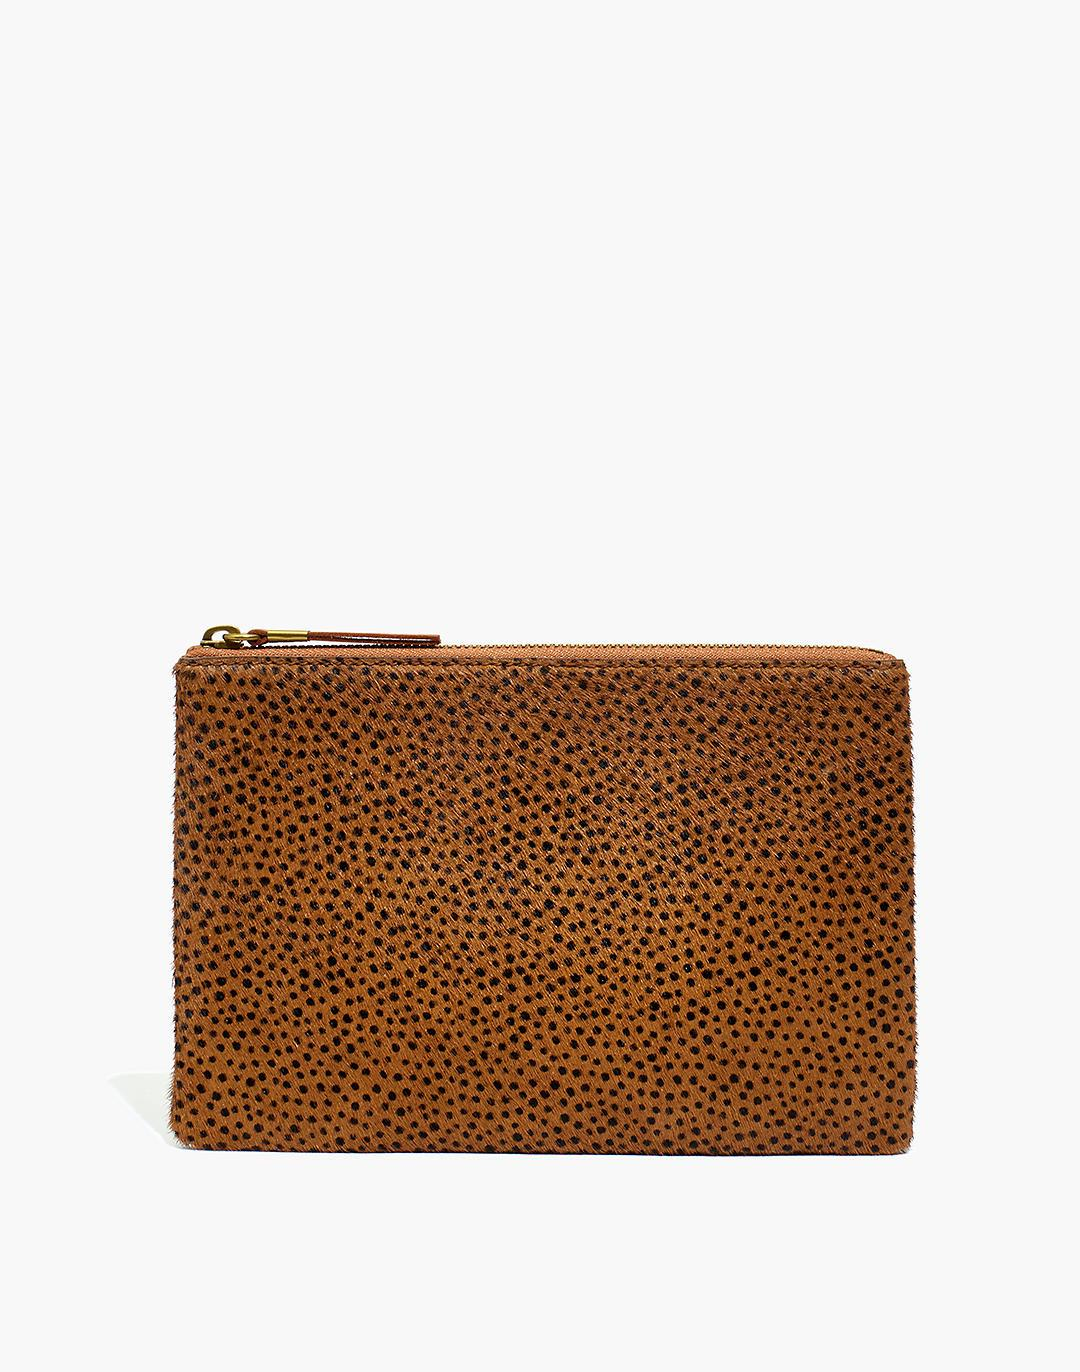 The Calf Hair Pouch Clutch: Spotted Edition